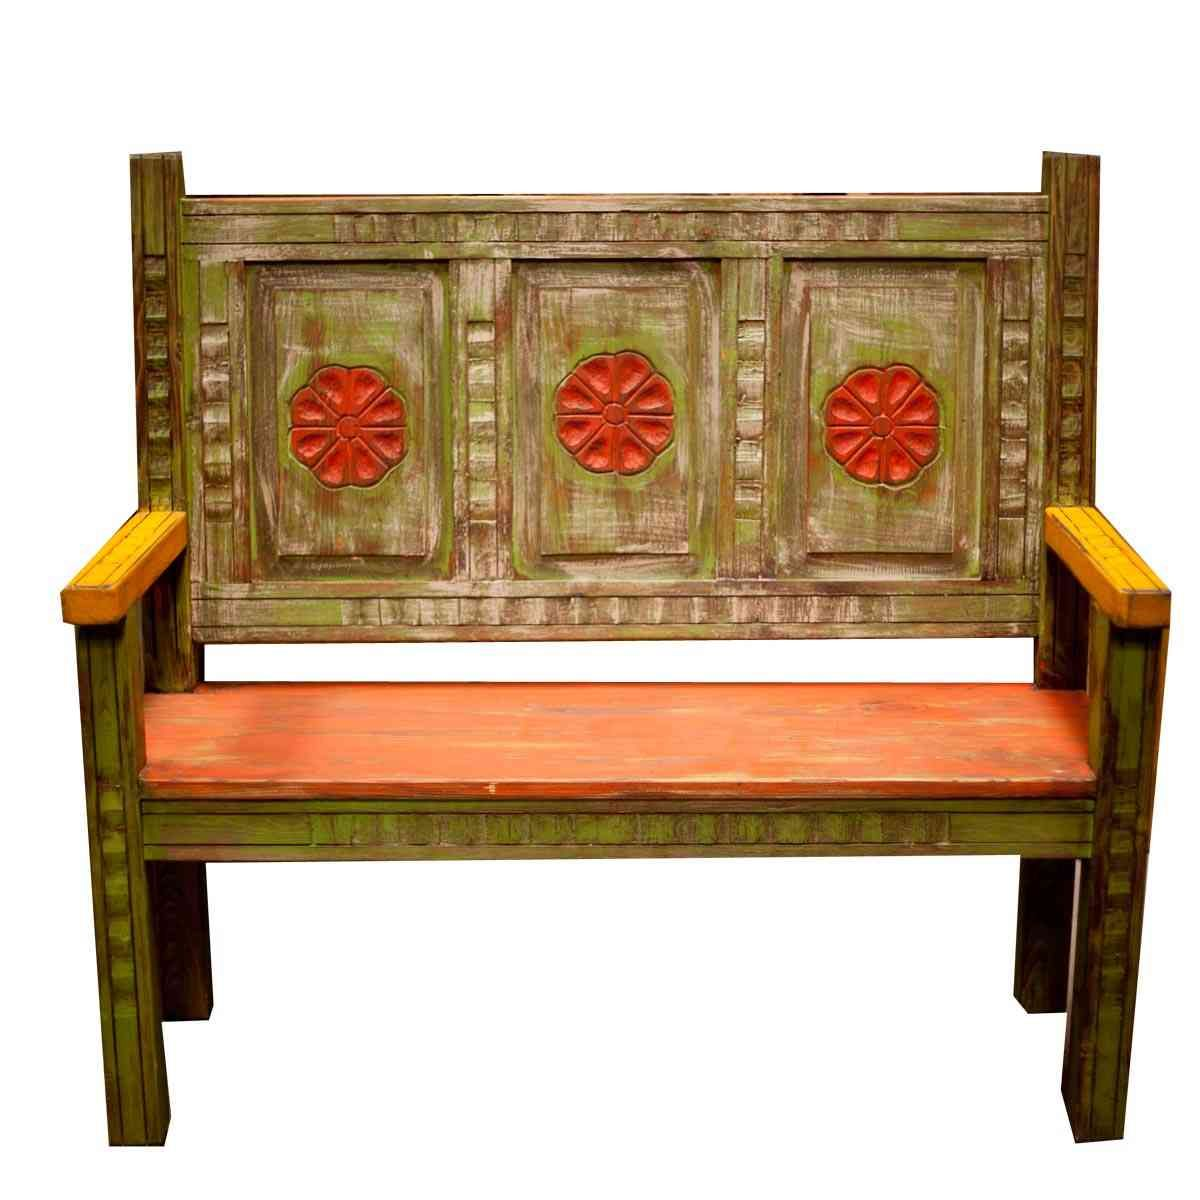 chair furniture tierra rustic mexicali the bench mexican best wood decor home